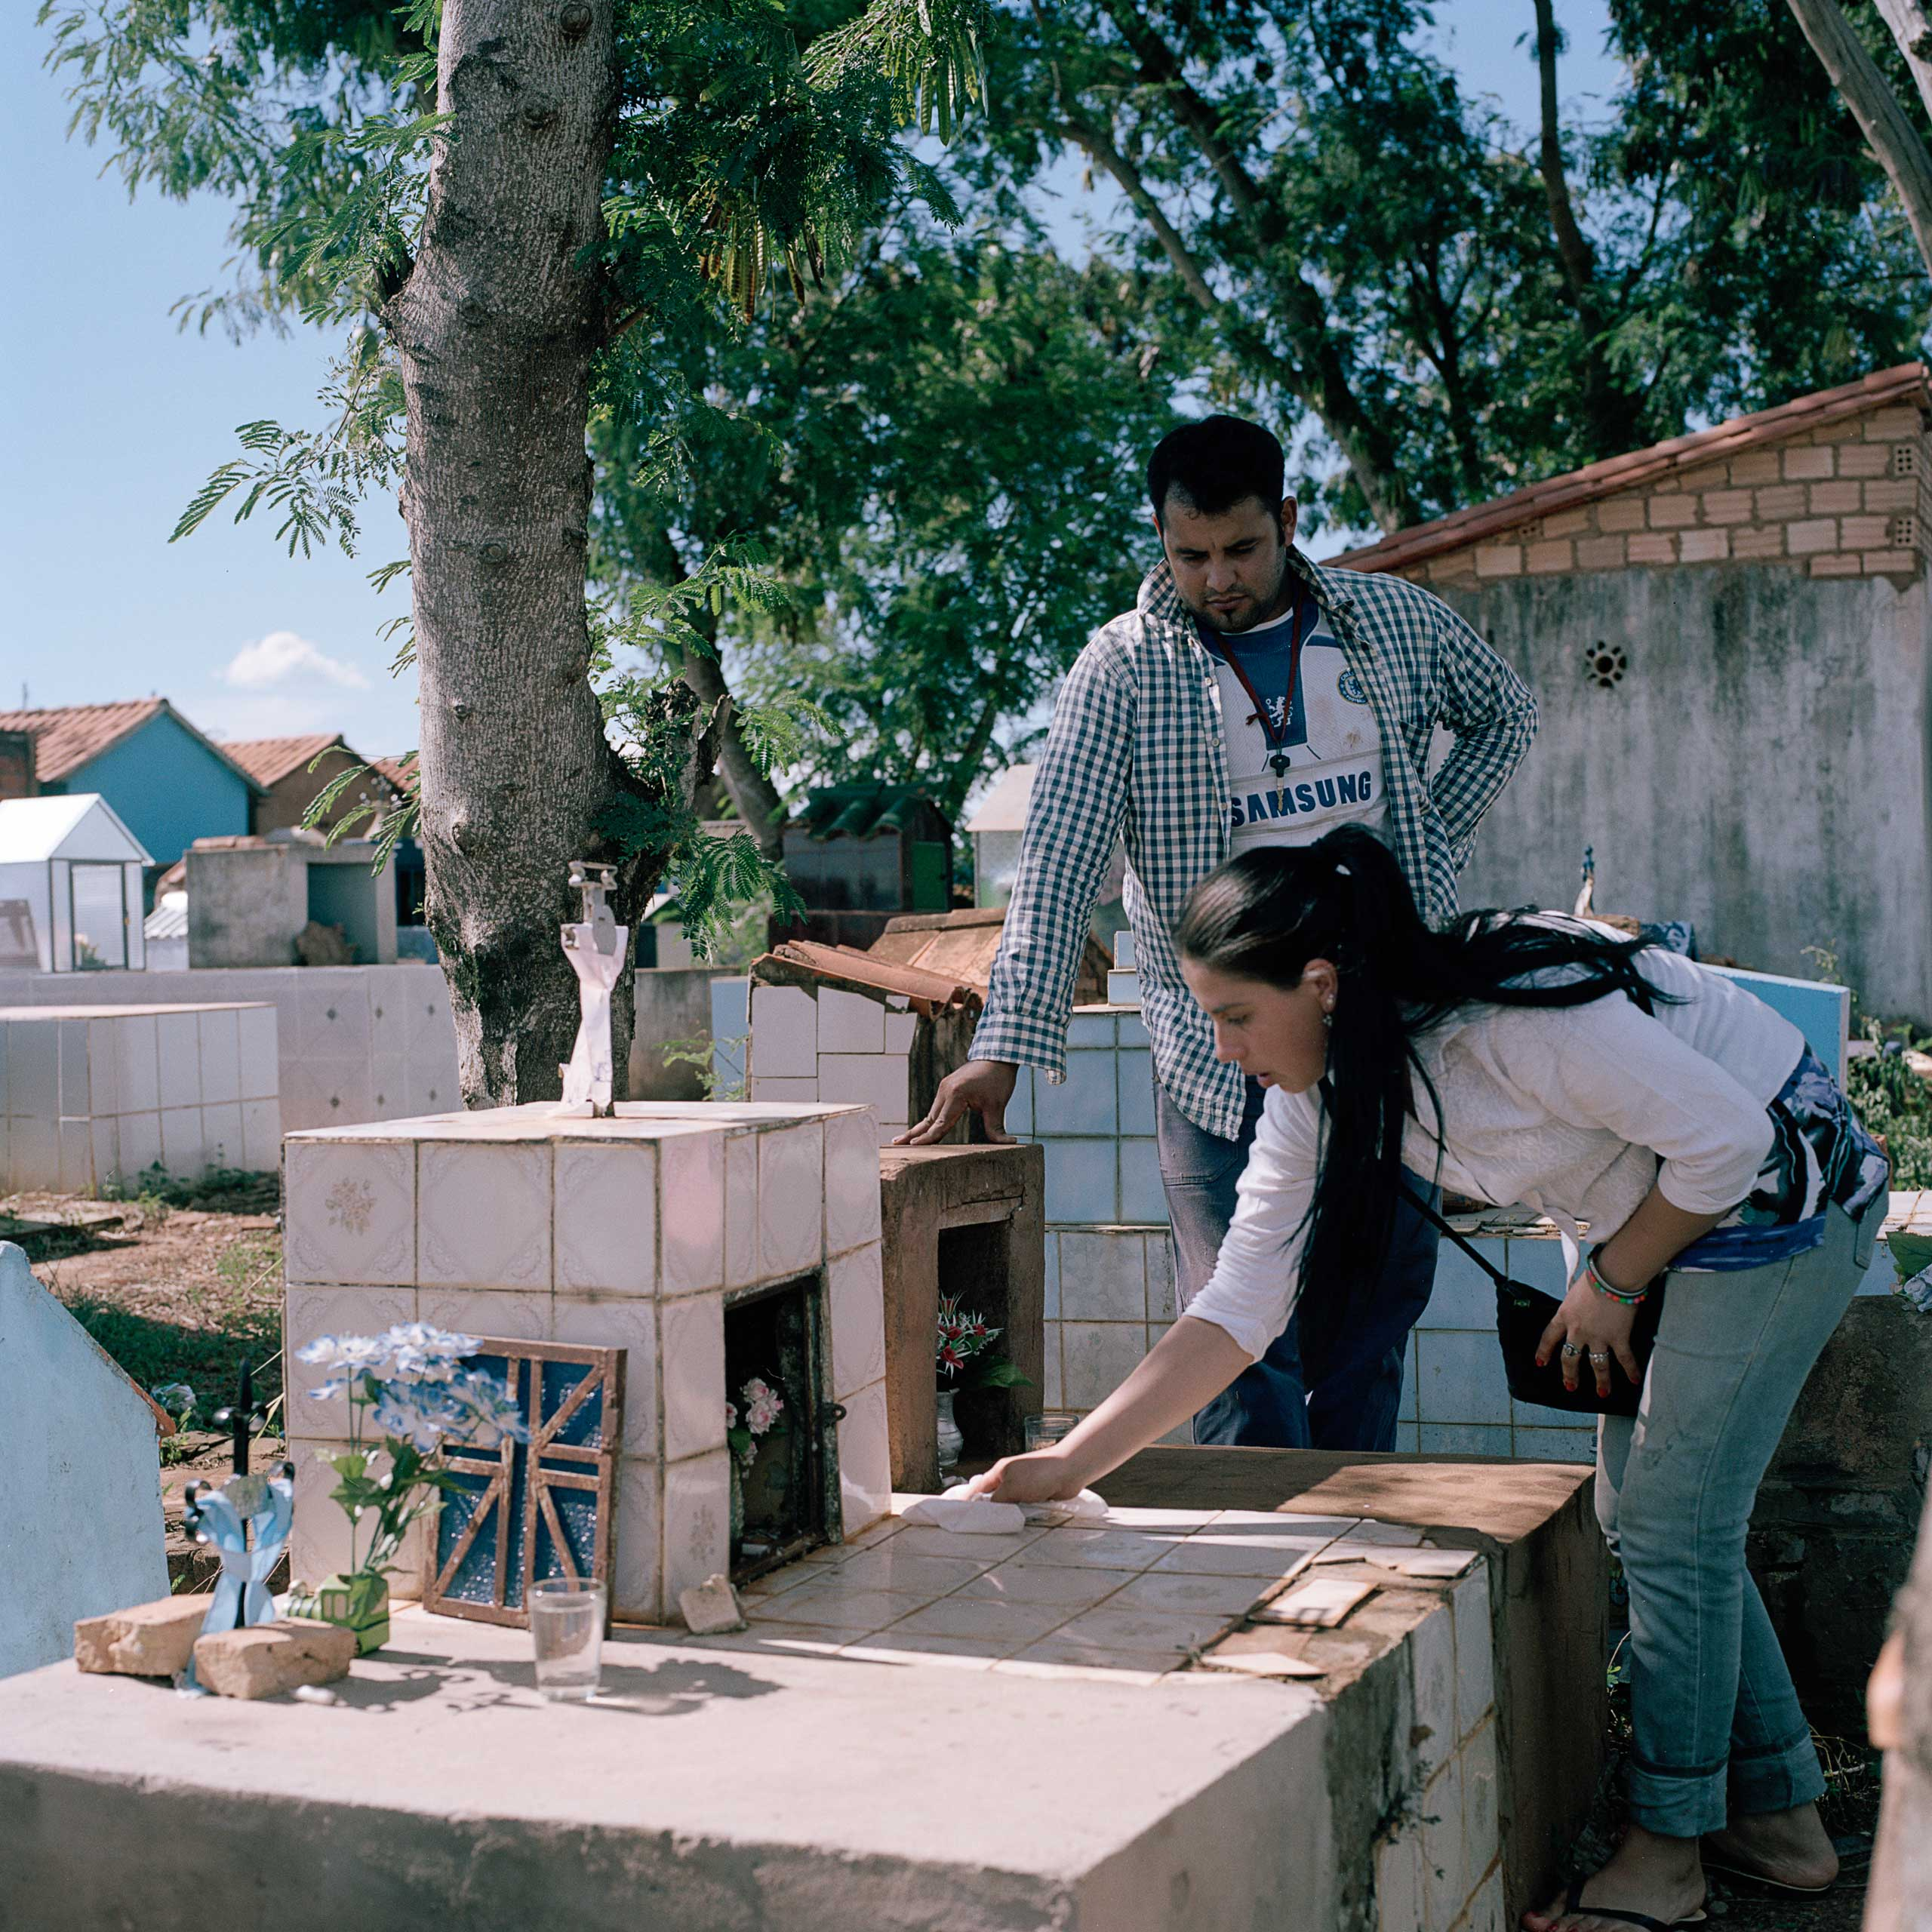 Perla da Silva, 26 and her husband José Domingo, 28, clean the small mausoleum where their sons are buried. She says shortly after the neighboring soy field began fumigating their crops, she started to feel sick and suffered a miscarriage, eight months into her pregnancy. A year later, she got pregnant again but their newborn son started to have heart problems at the age of 4 months and died shortly after. She believes the events are linked to her exposure to pesticides while pregnant.